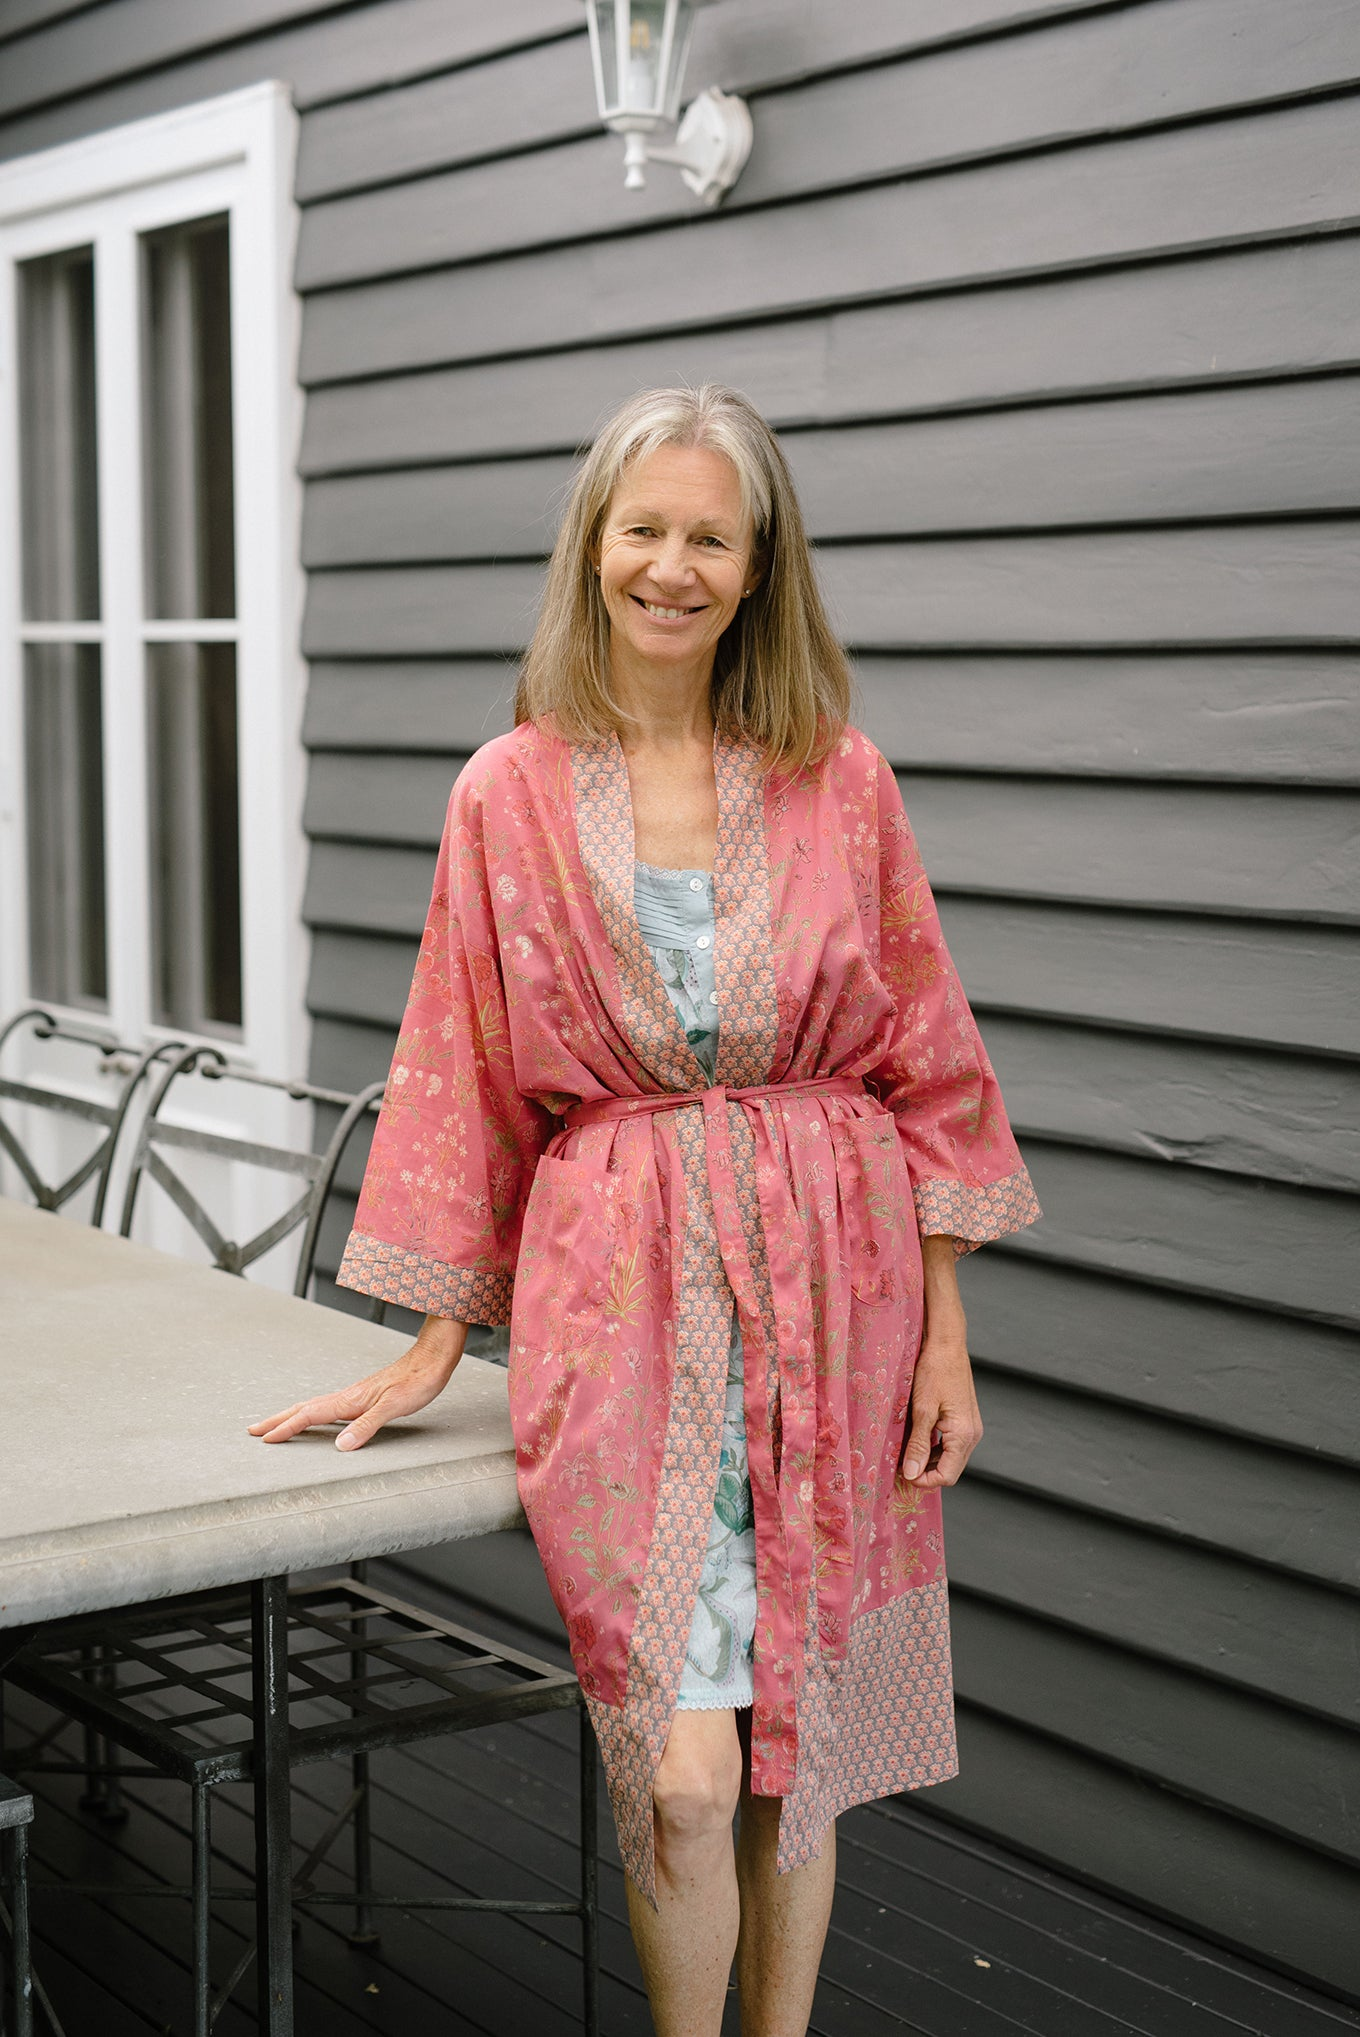 Ethically made, cotton voile kimono robe dressing gown in deep raspberry pink floral print.